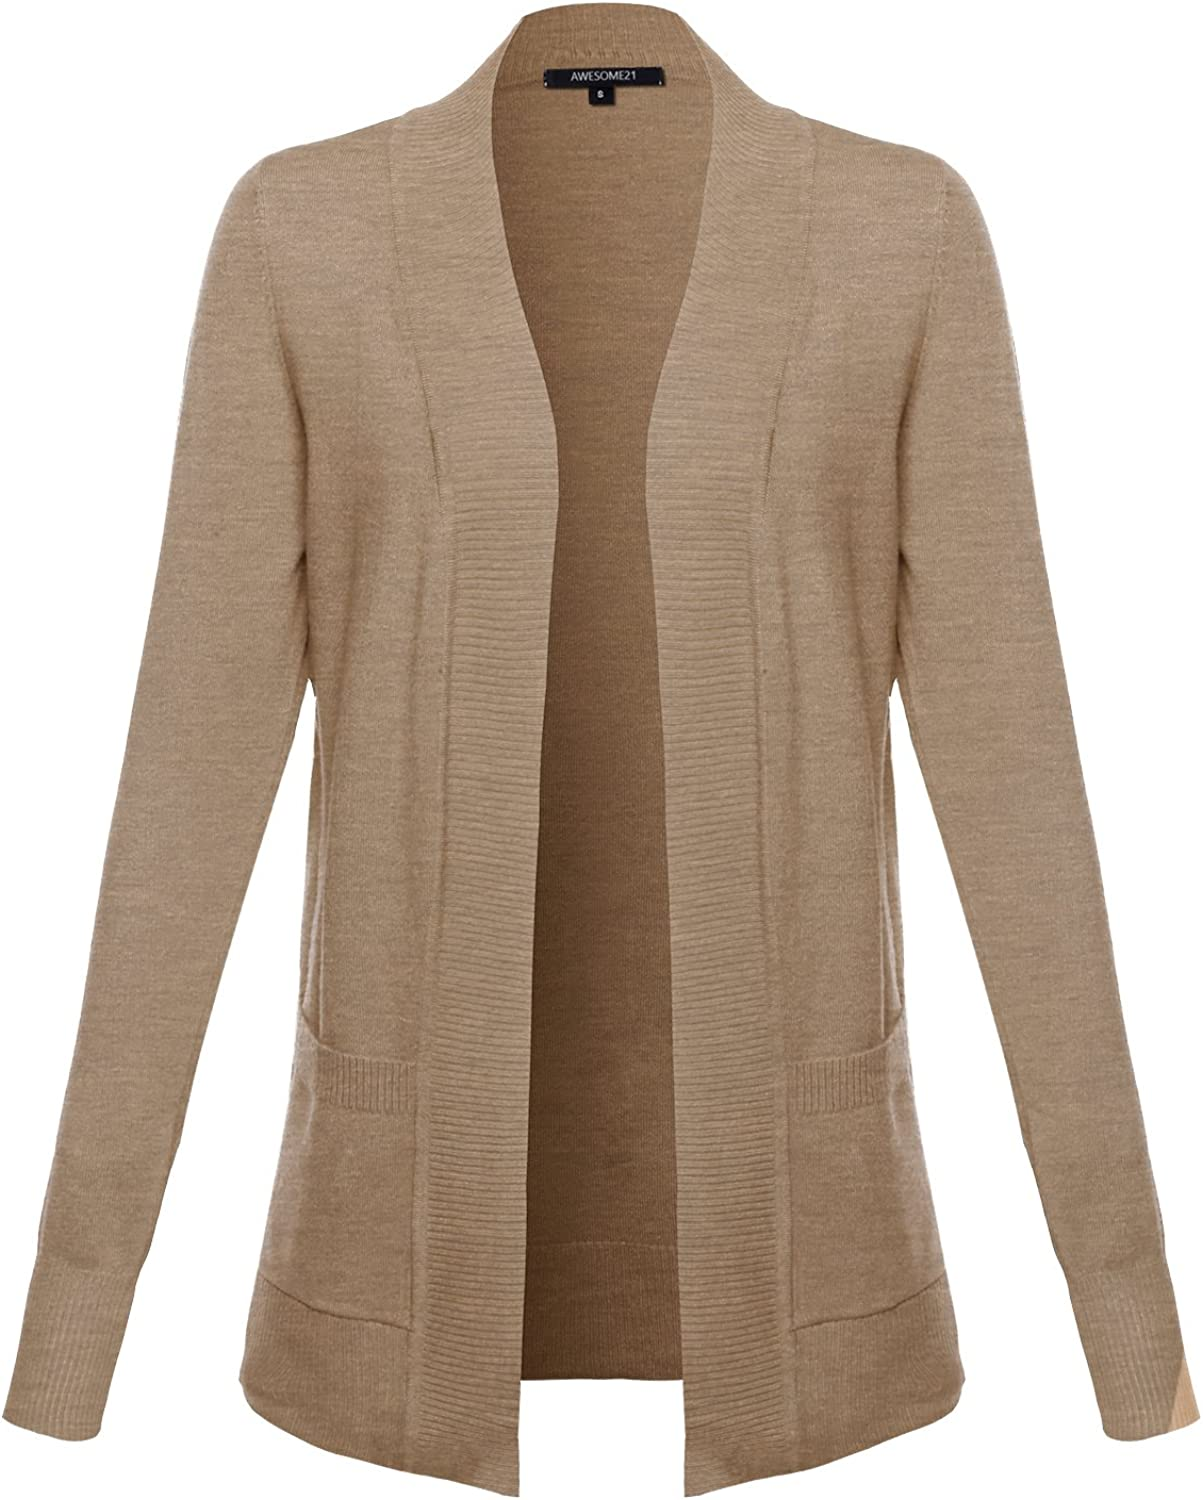 Awesome21 Solid Soft Stretch Open Front Knit Cardigan Camel Size XL